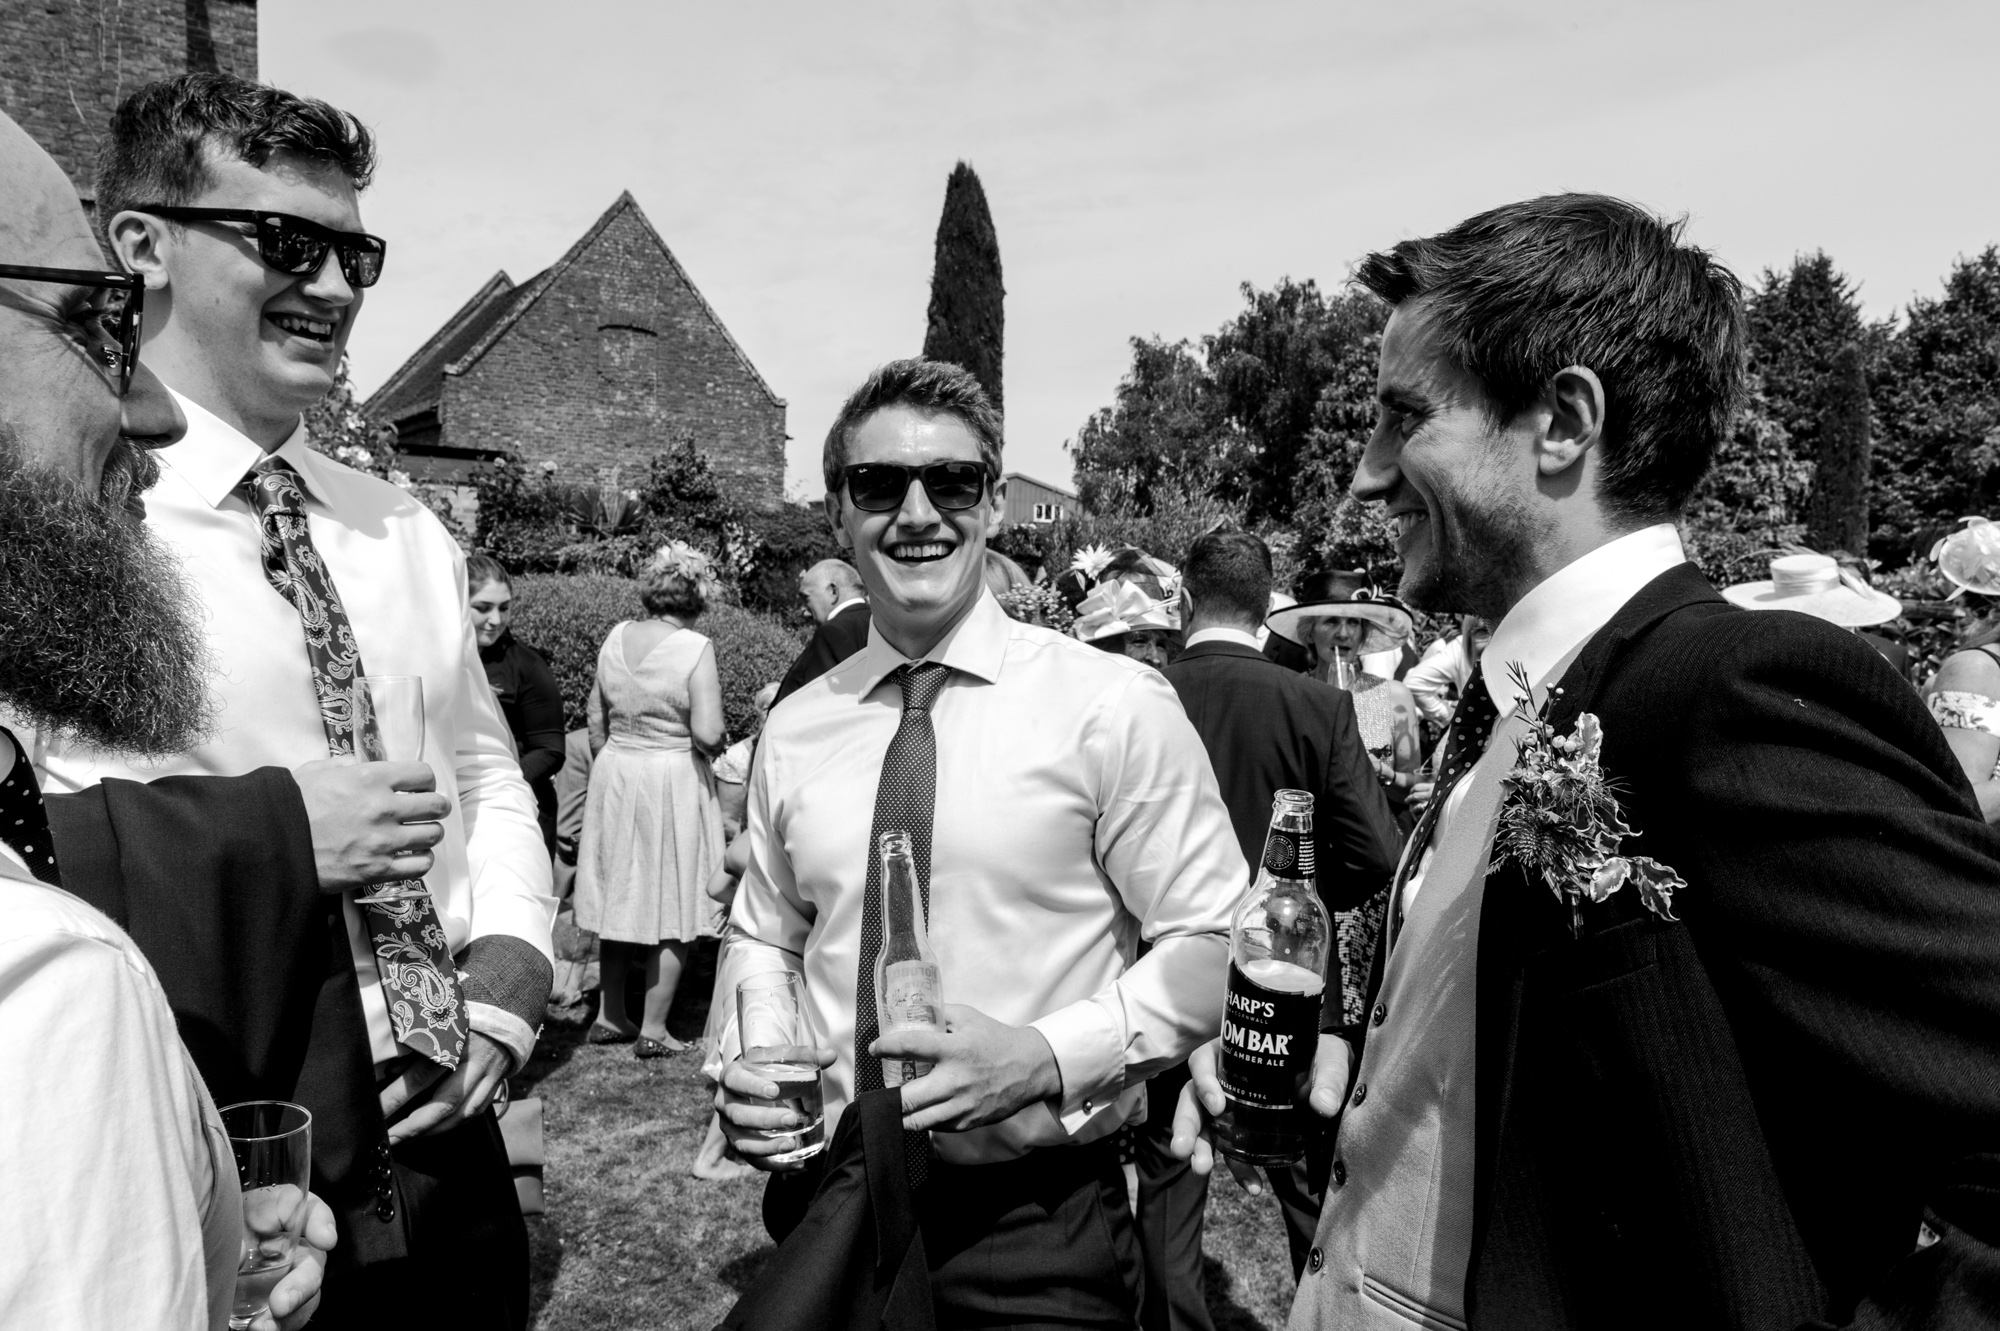 Cotswold Wedding Photography 11.09.1825.jpg